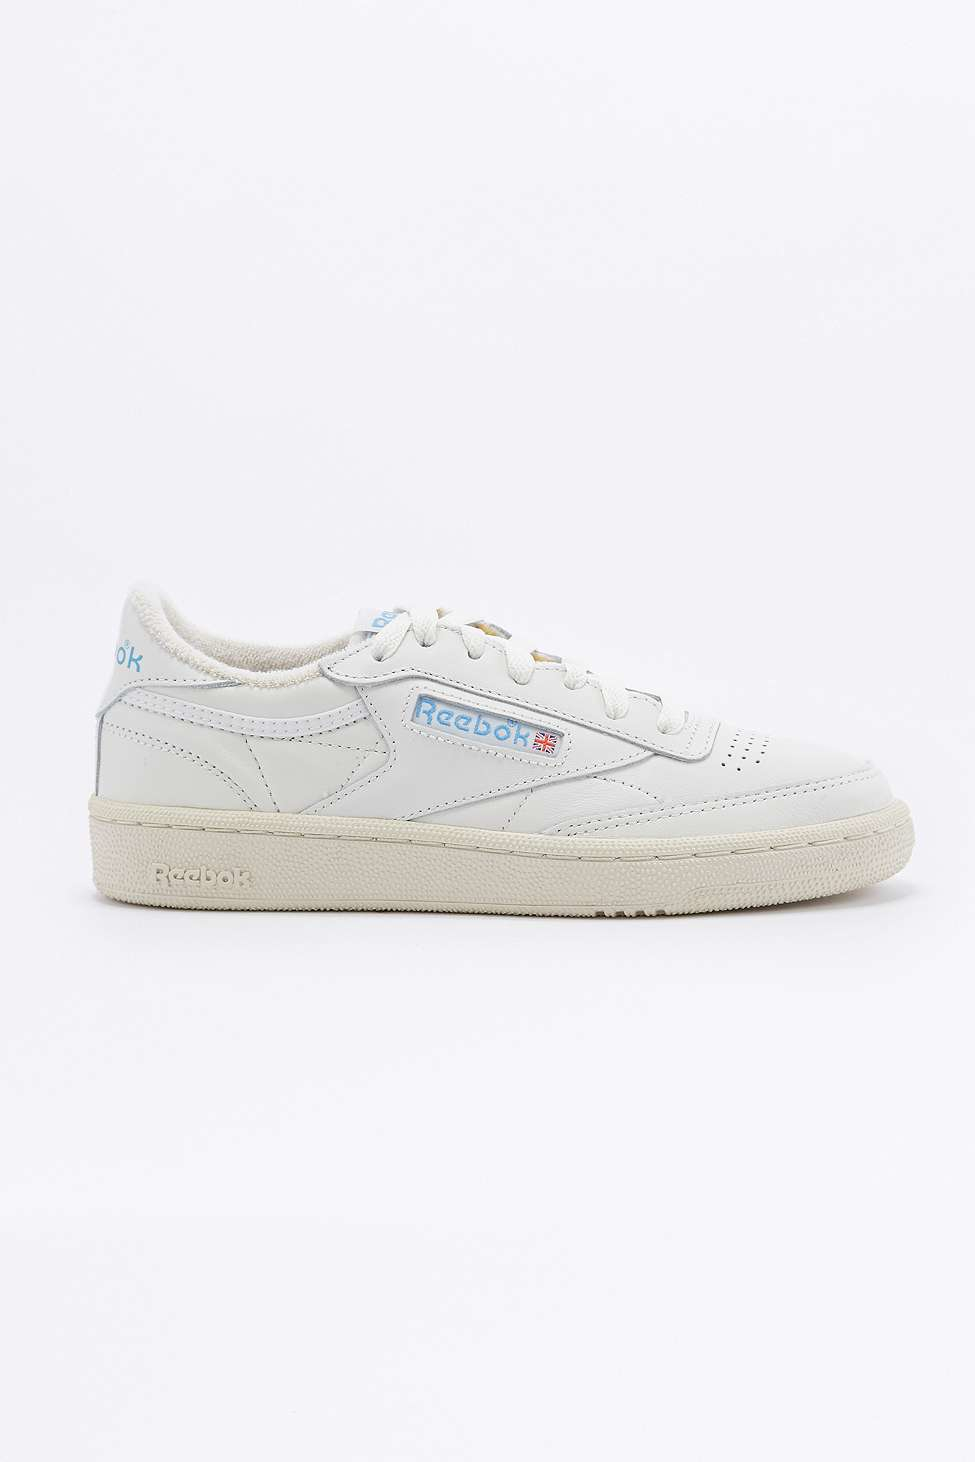 hot sale online 0c277 75bb7 Reebok Club C 85 Vintage White Trainers in White for Men - Lyst